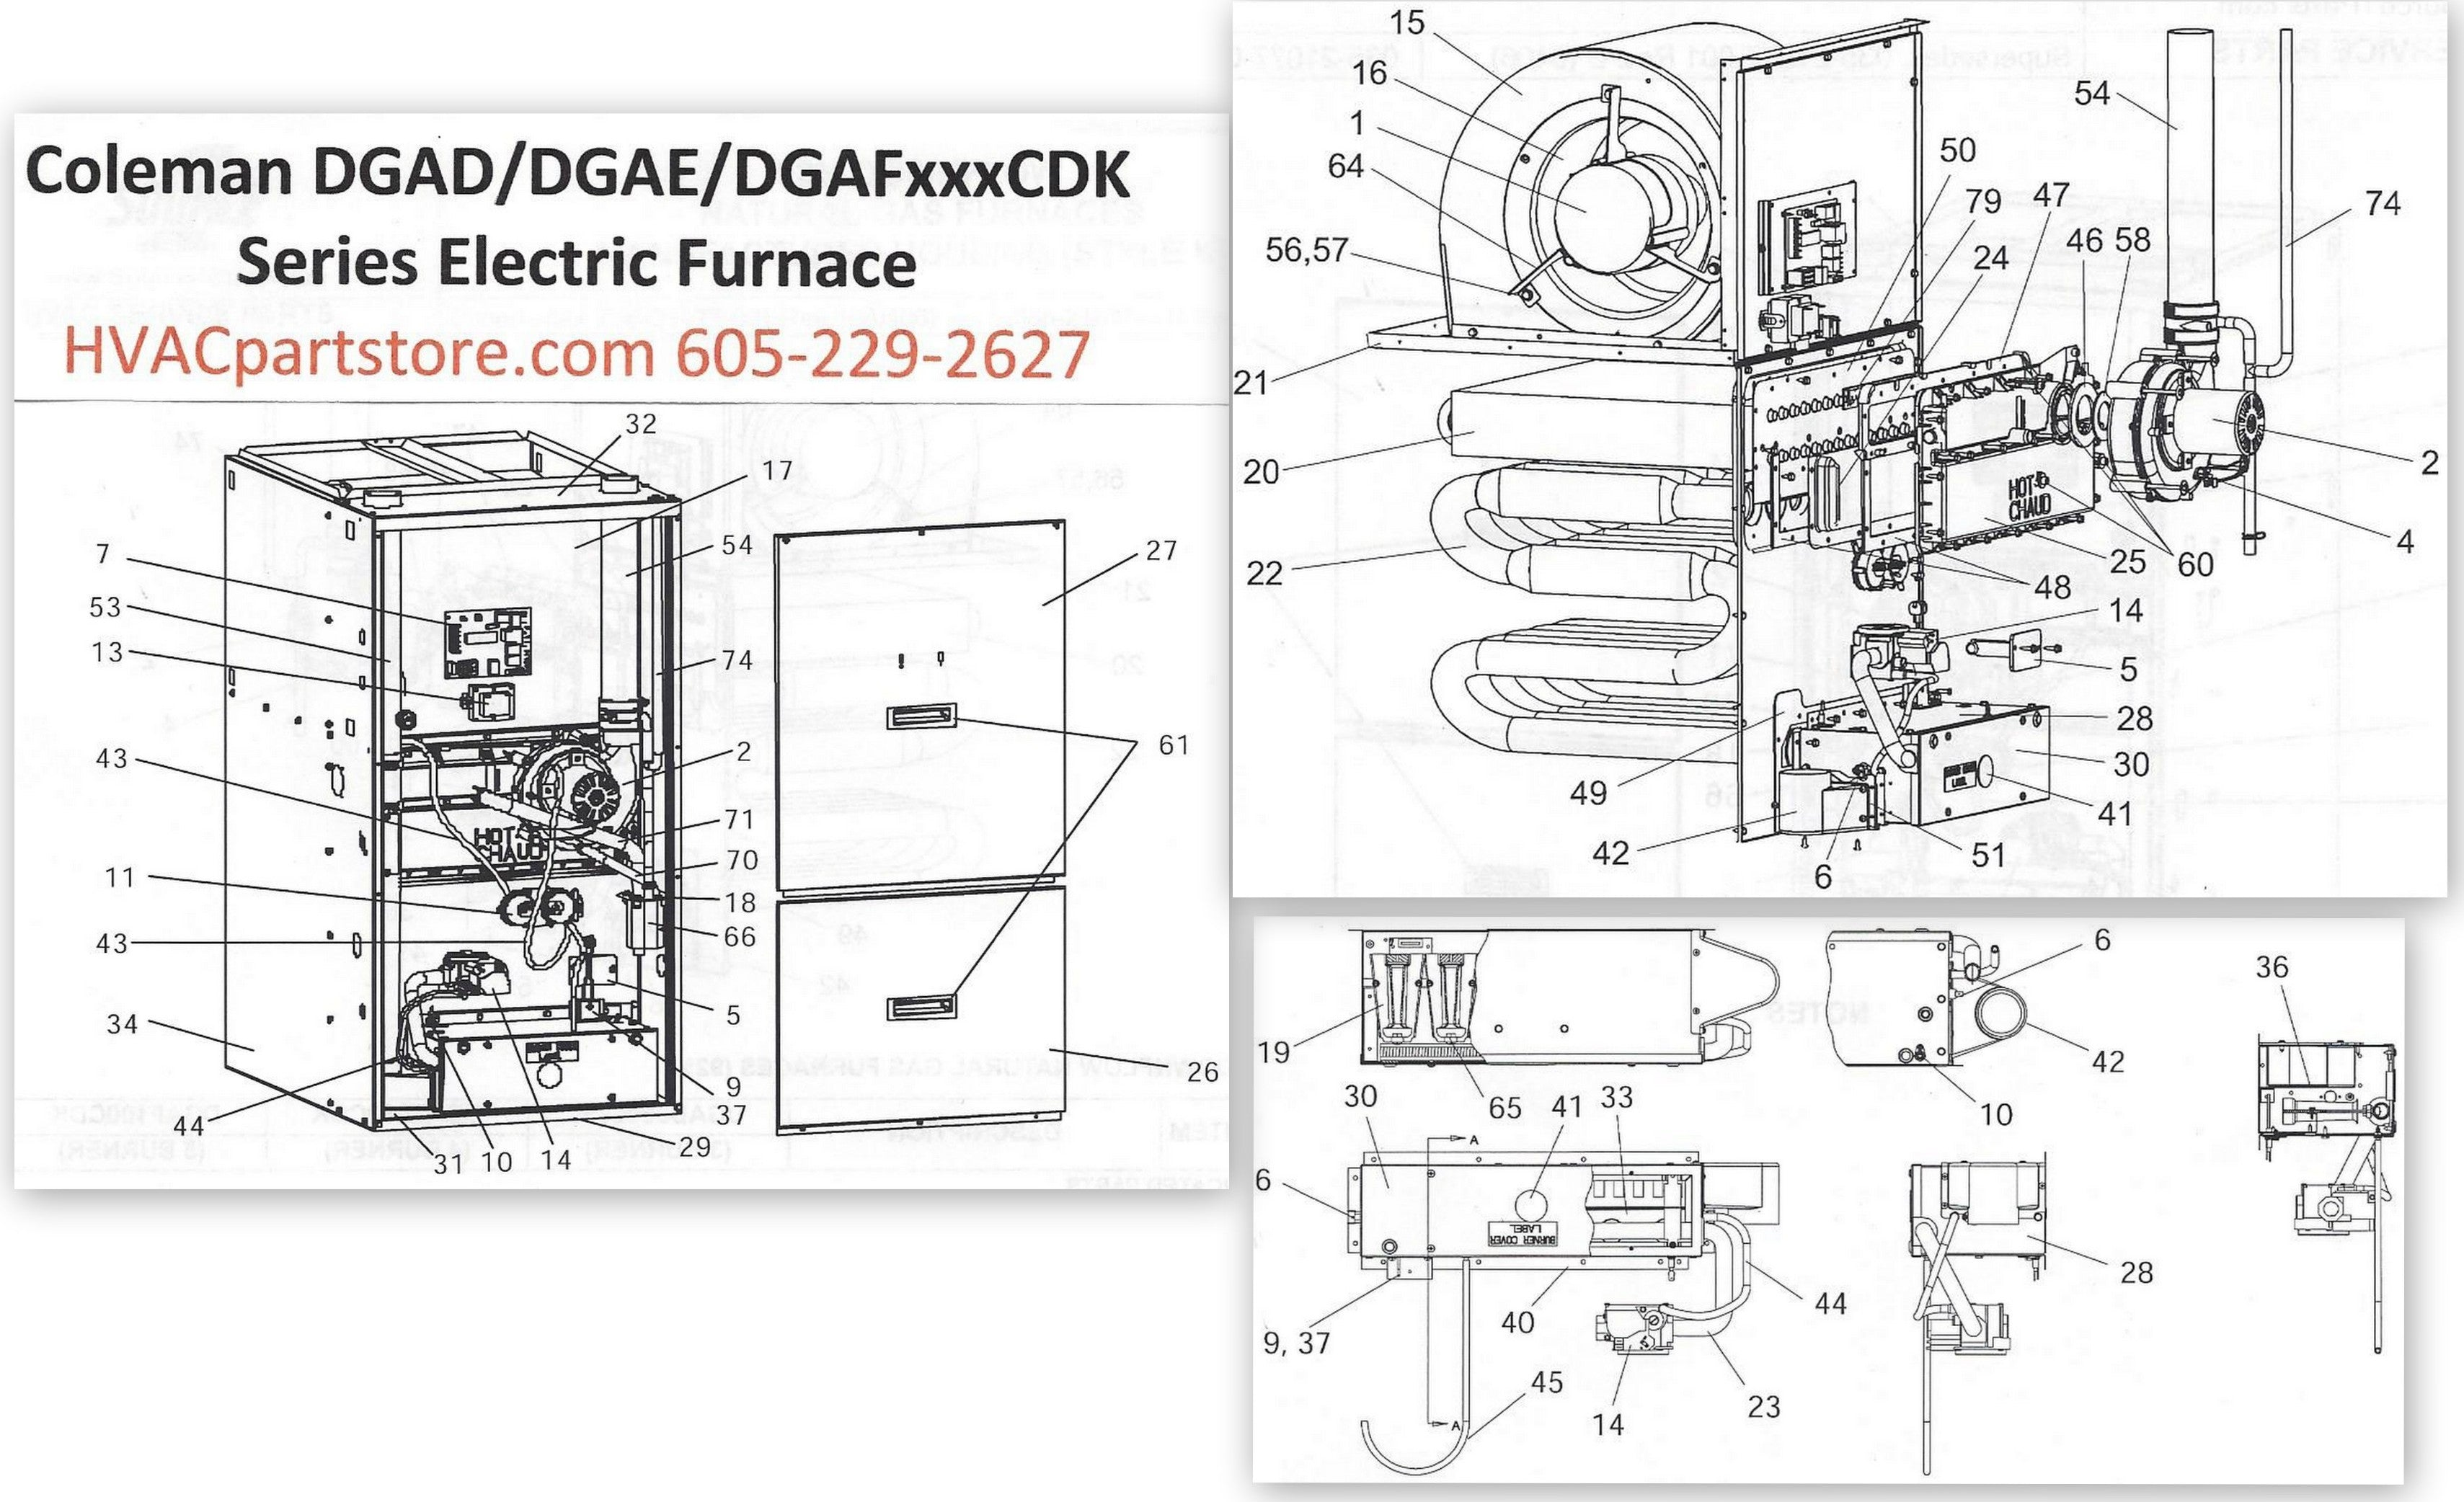 wiring diagram electric furnaces coleman furnace wiring diagram img  wiring diagram electric furnaces coleman furnace #4